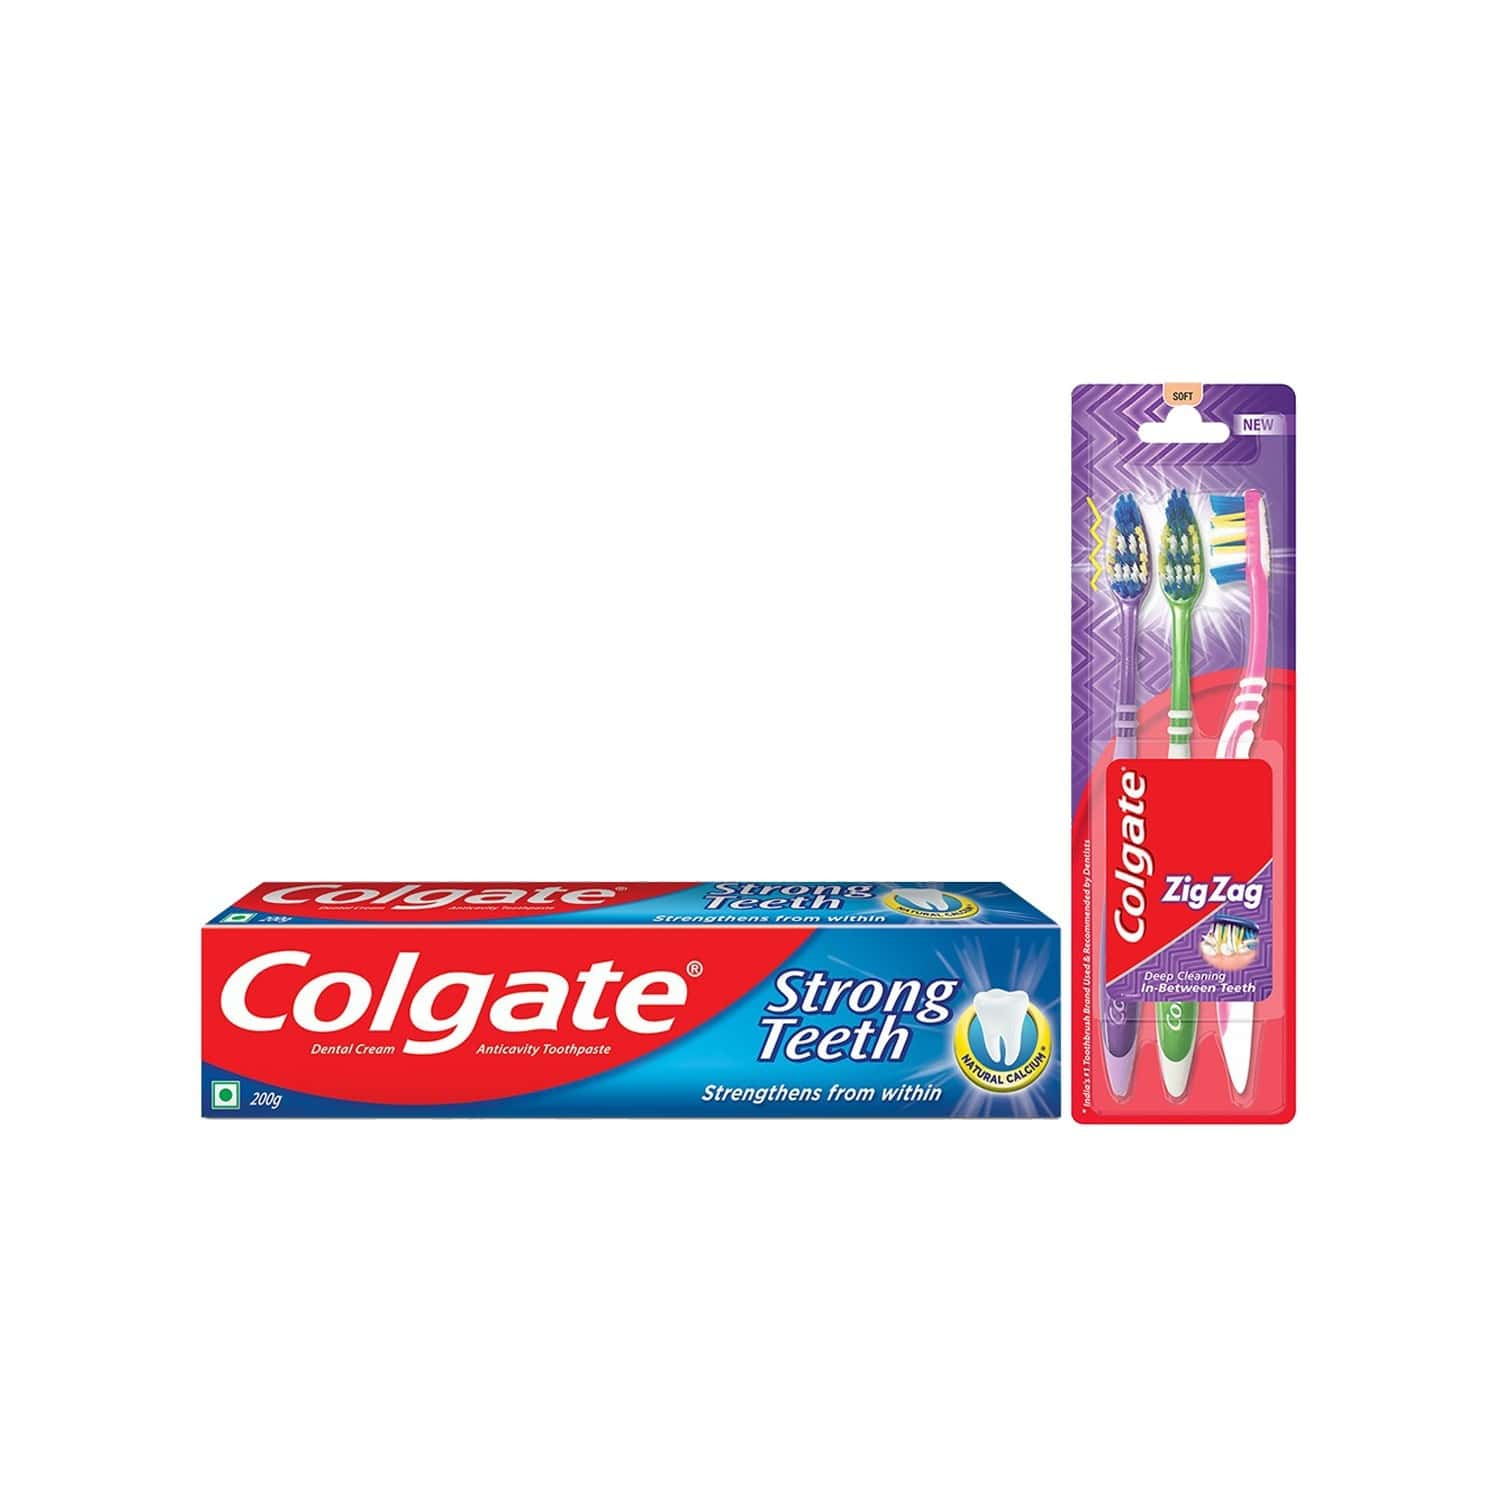 Colgate Strong Teeth Toothpaste - 200gm With Zigzag Toothbrush - 3 Pcs